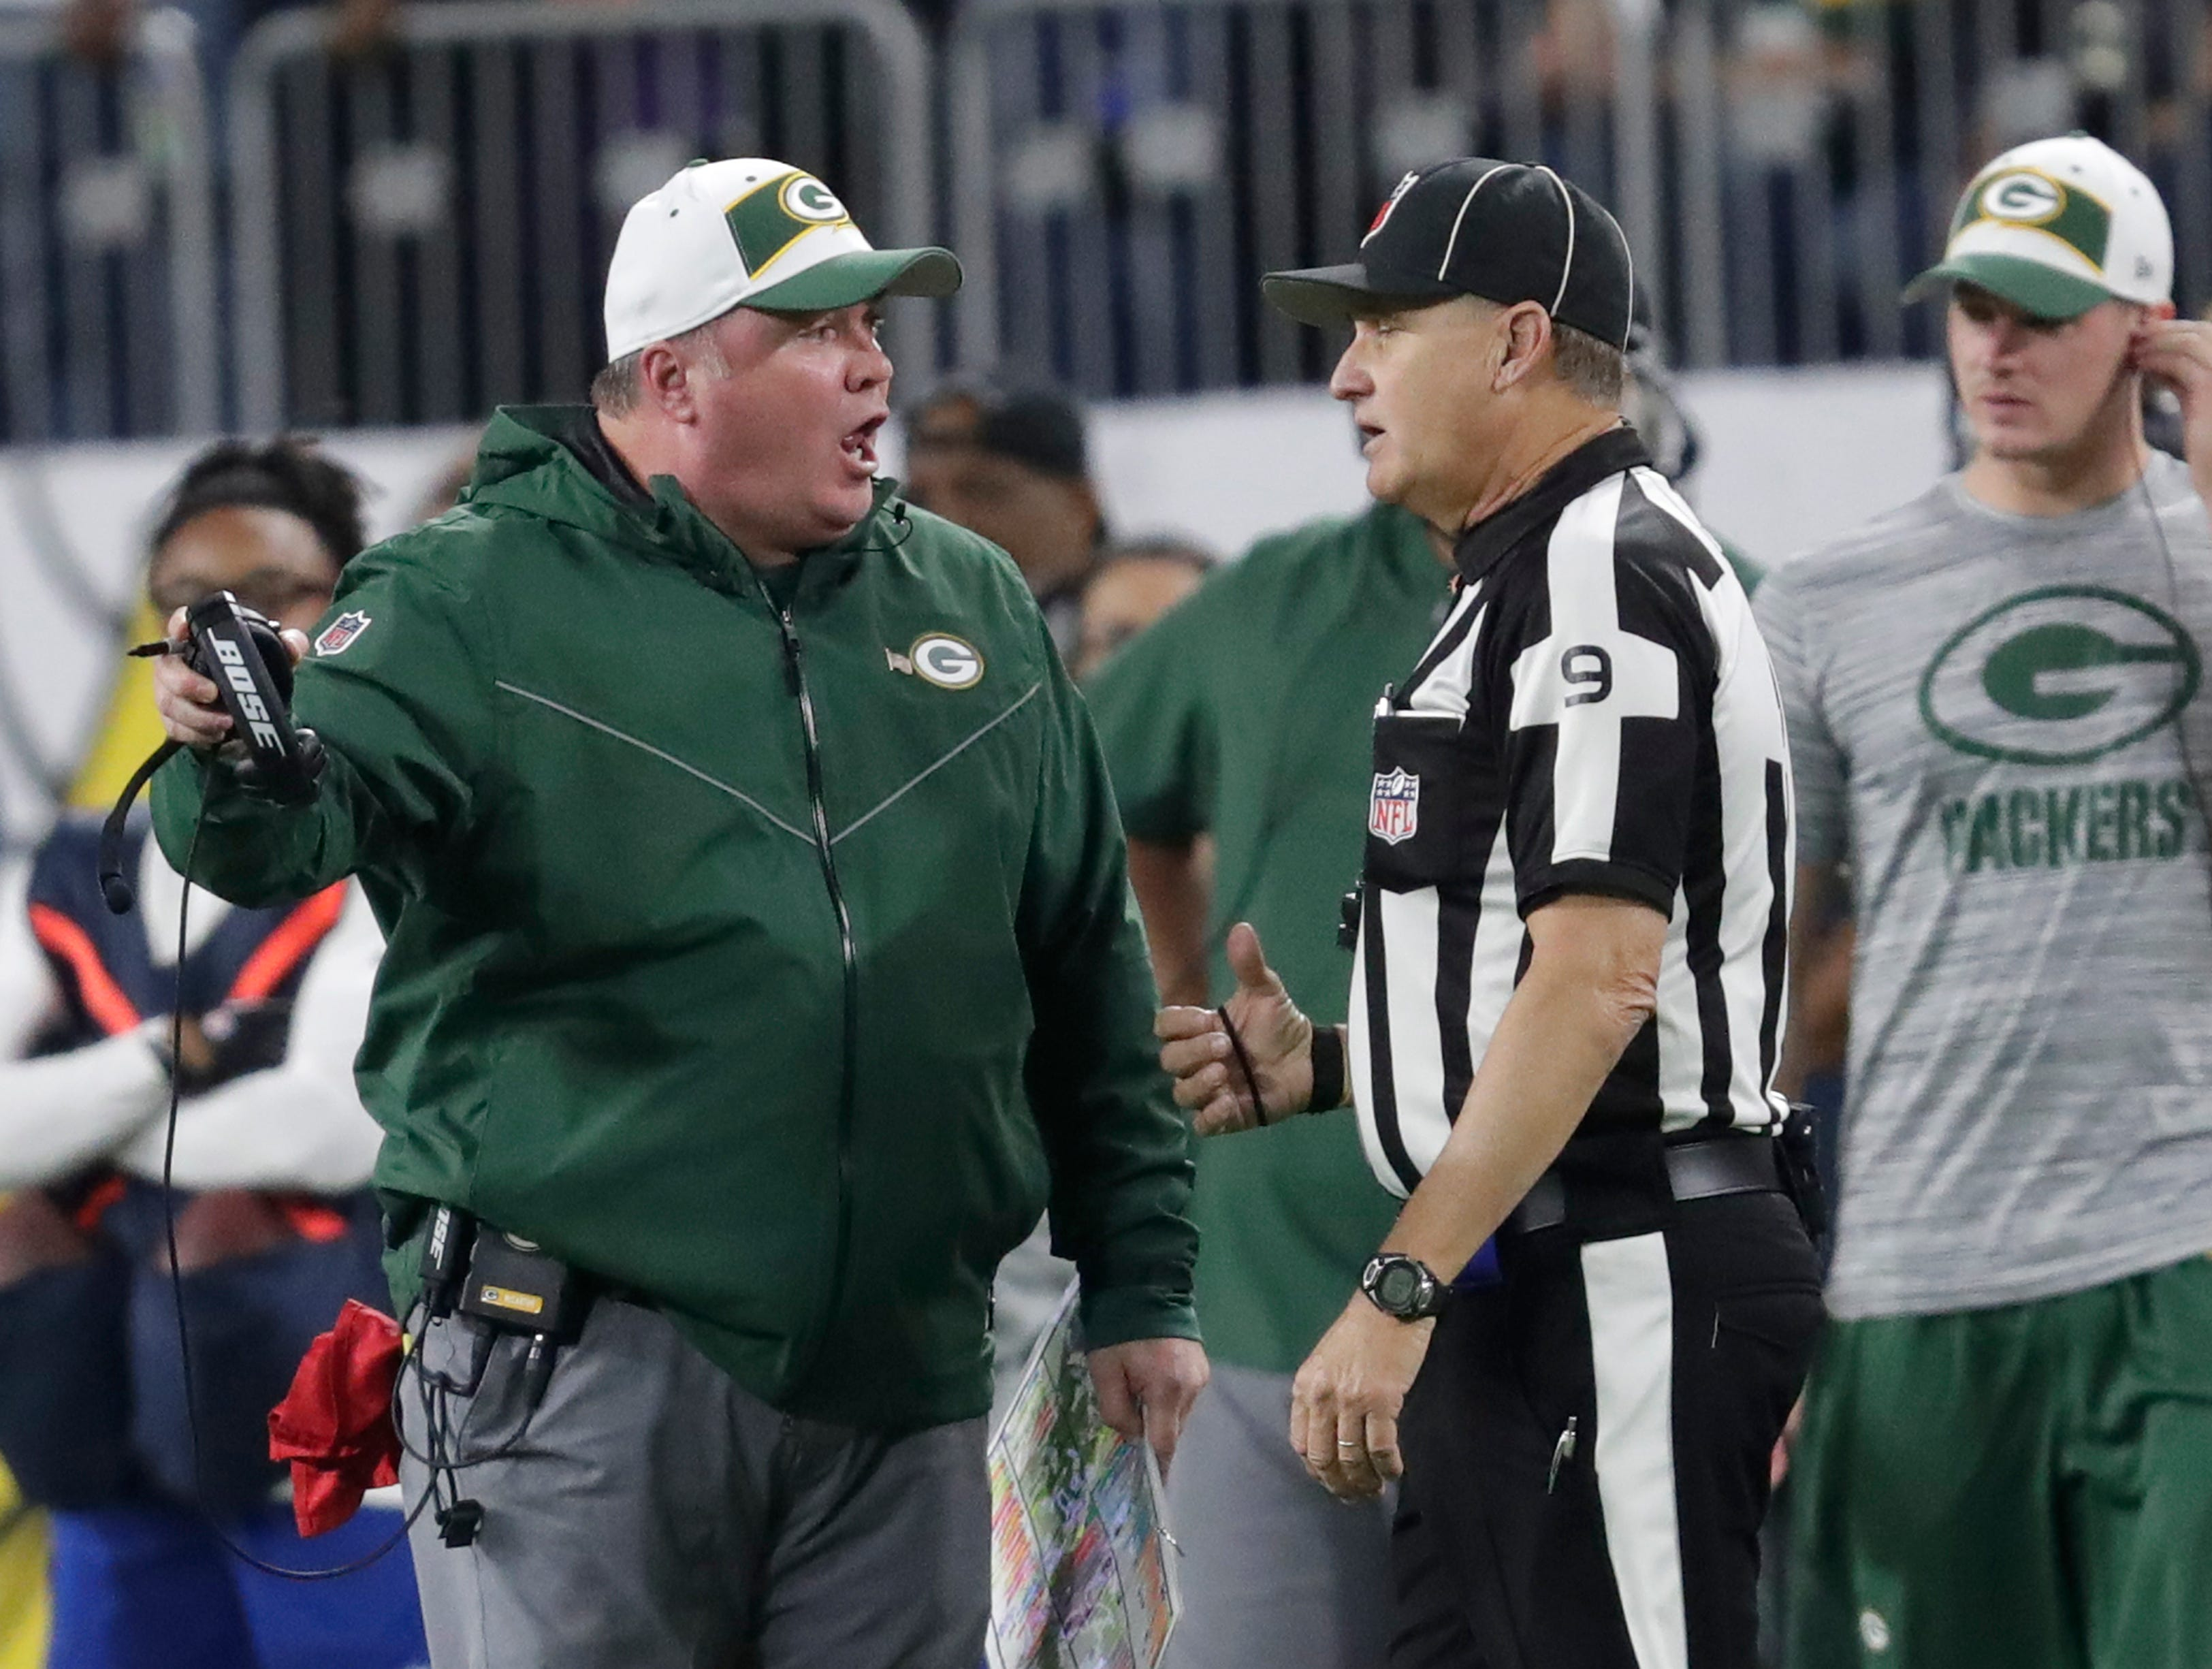 Green Bay Packers head coach Mike McCarthy yells at an official in the third quarter against the Minnesota Vikings during their football game Sunday, November 25, 2018, at U.S. Bank Stadium in Minneapolis, Minn. 